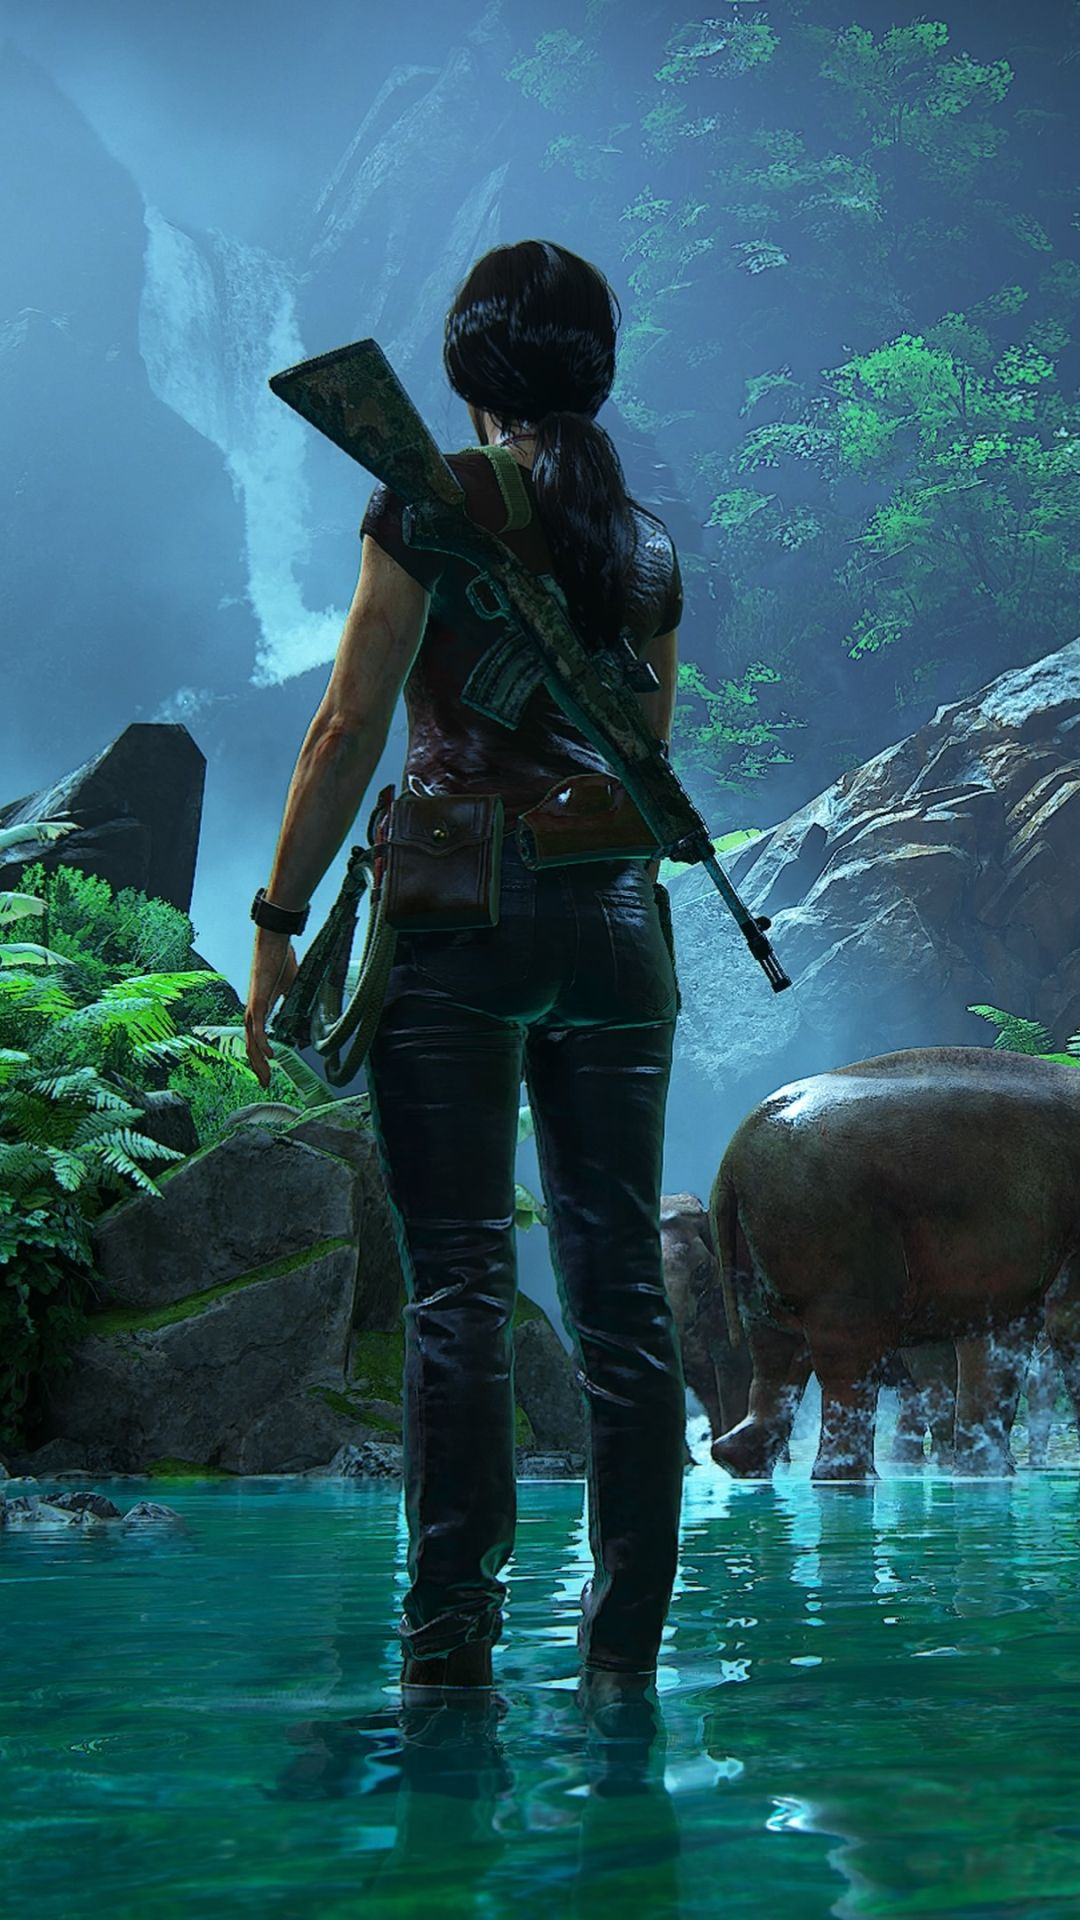 Cool Uncharted 4 Background Image In 2020 Background Images Uncharted Beautiful Backgrounds